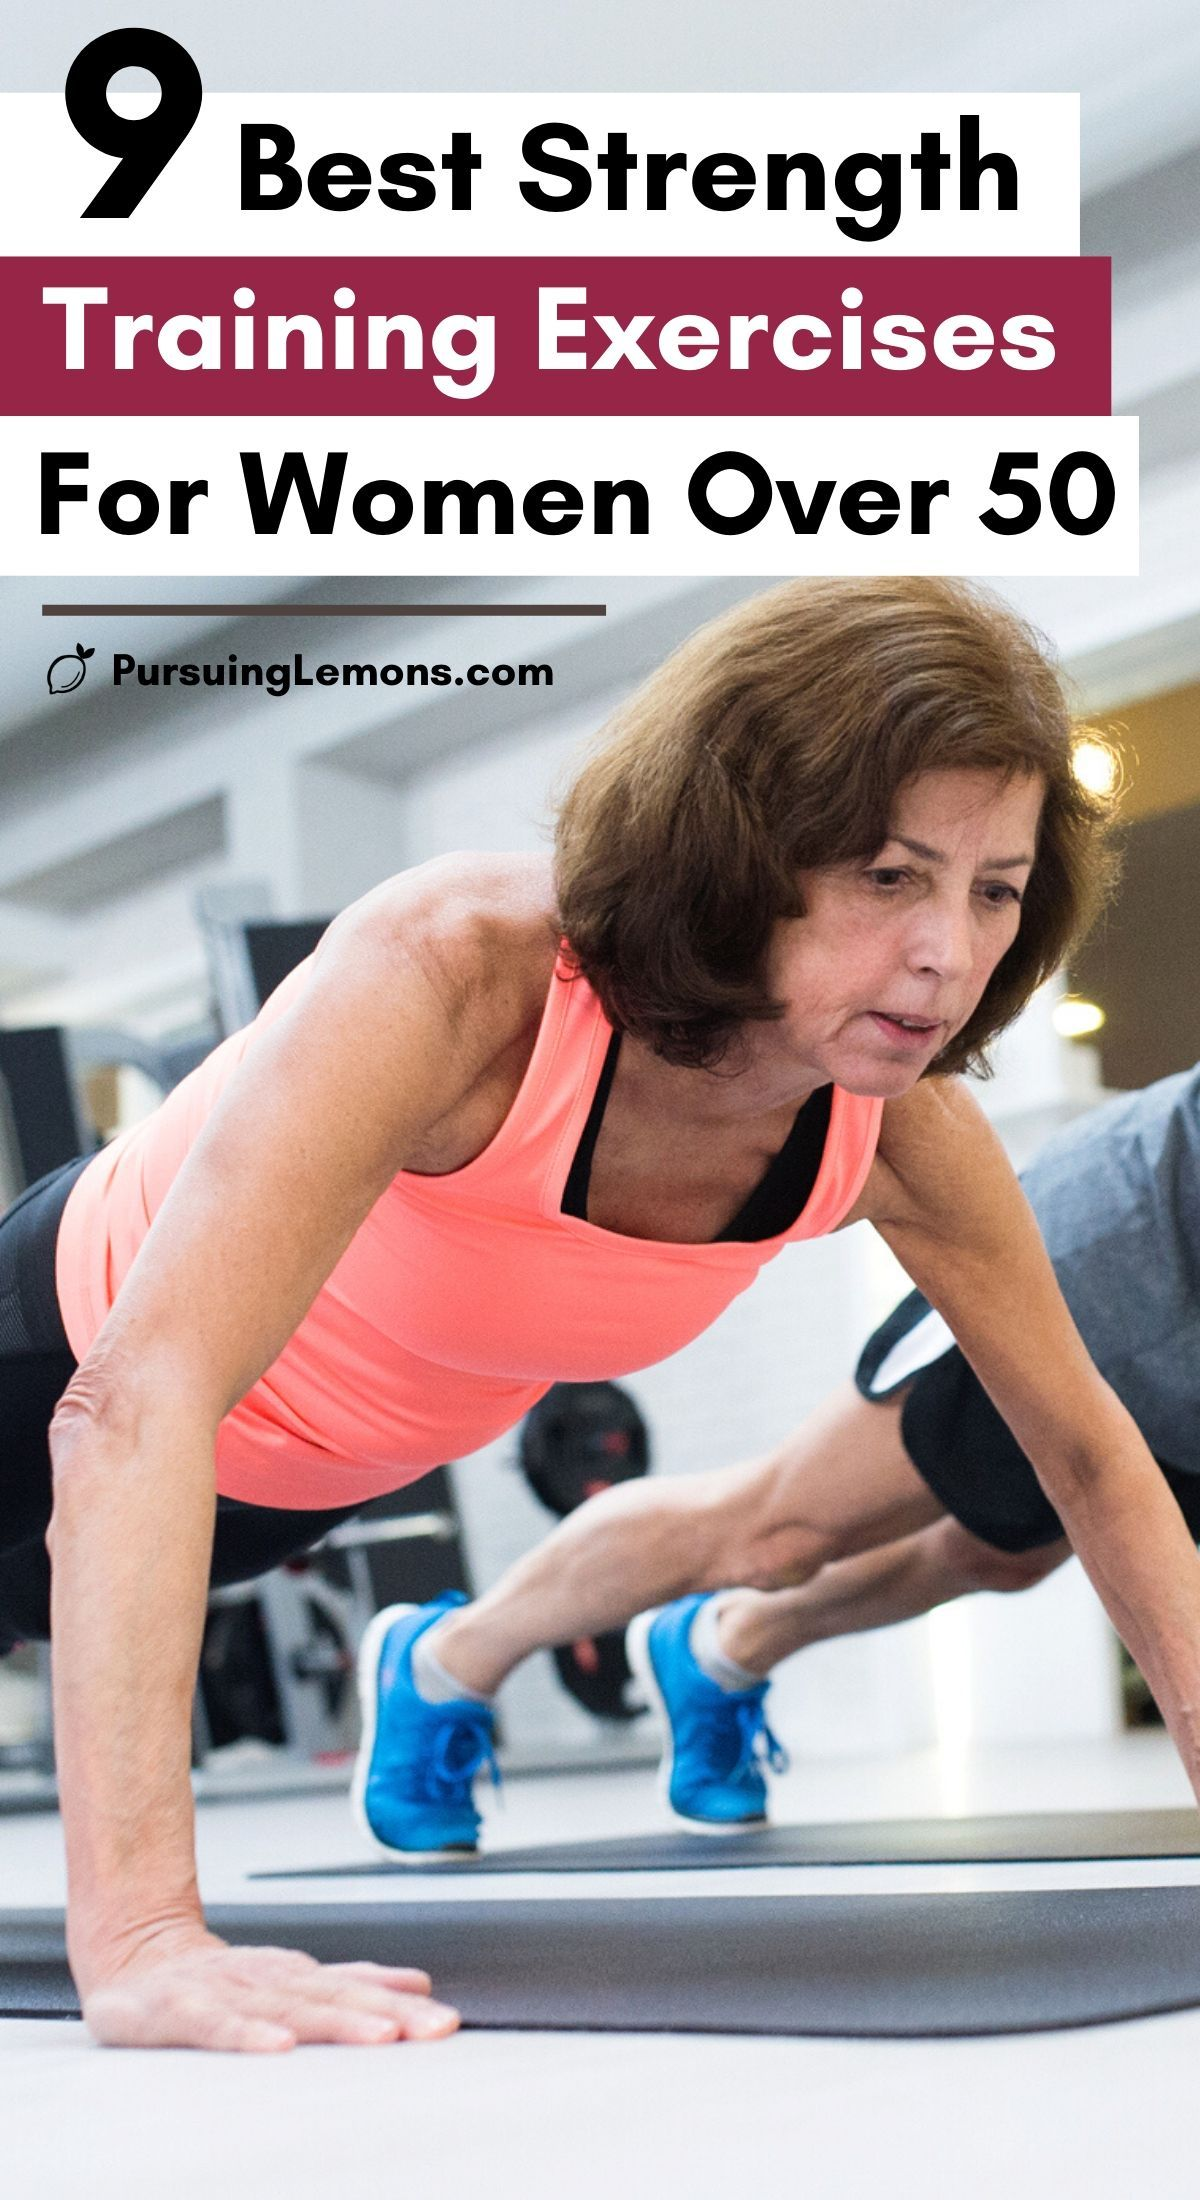 9 Best Strength Training Exercises for Women Over 50